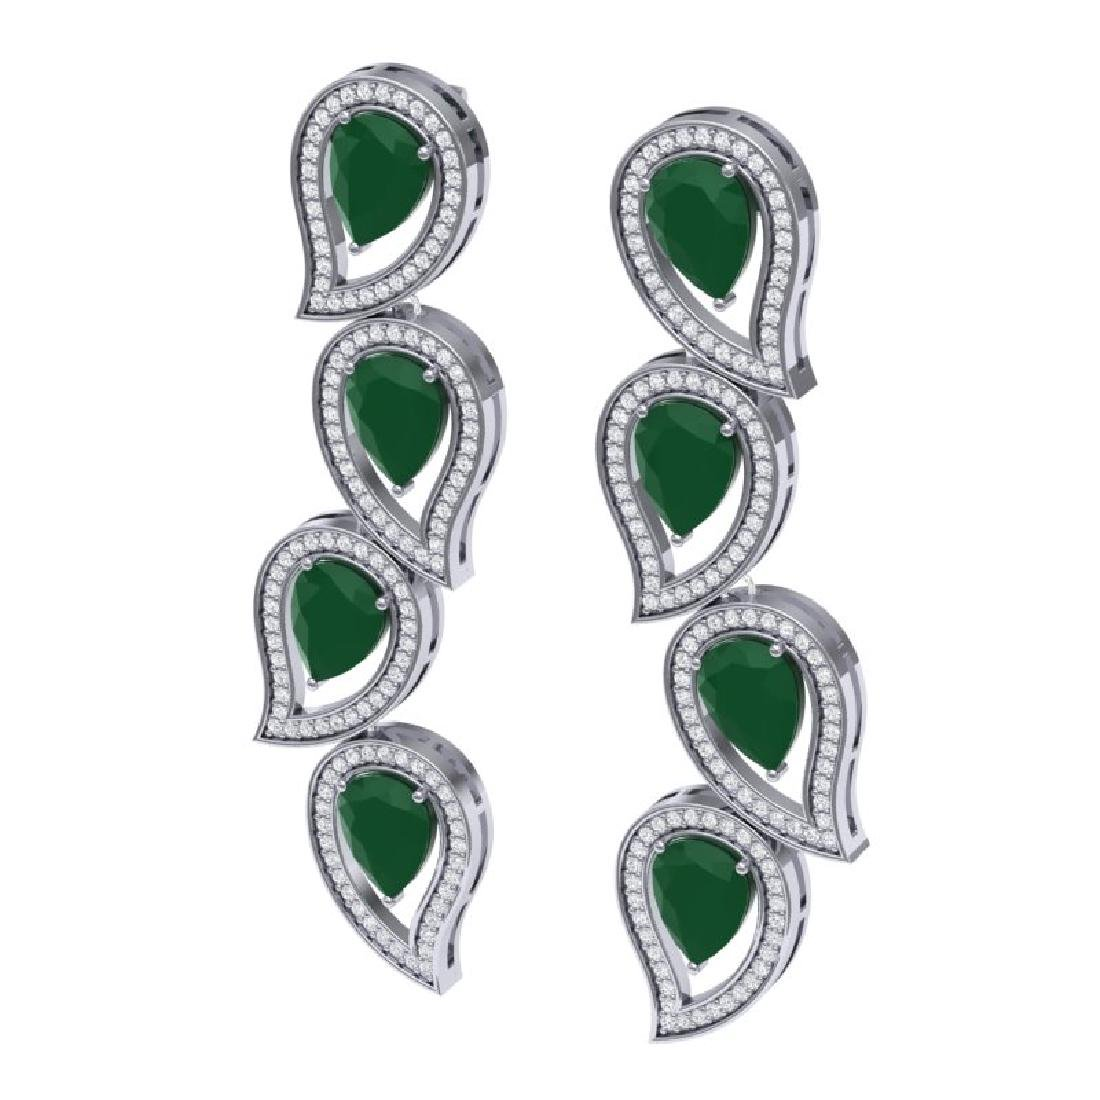 16.44 CTW Royalty Emerald & VS Diamond Earrings 18K - 2